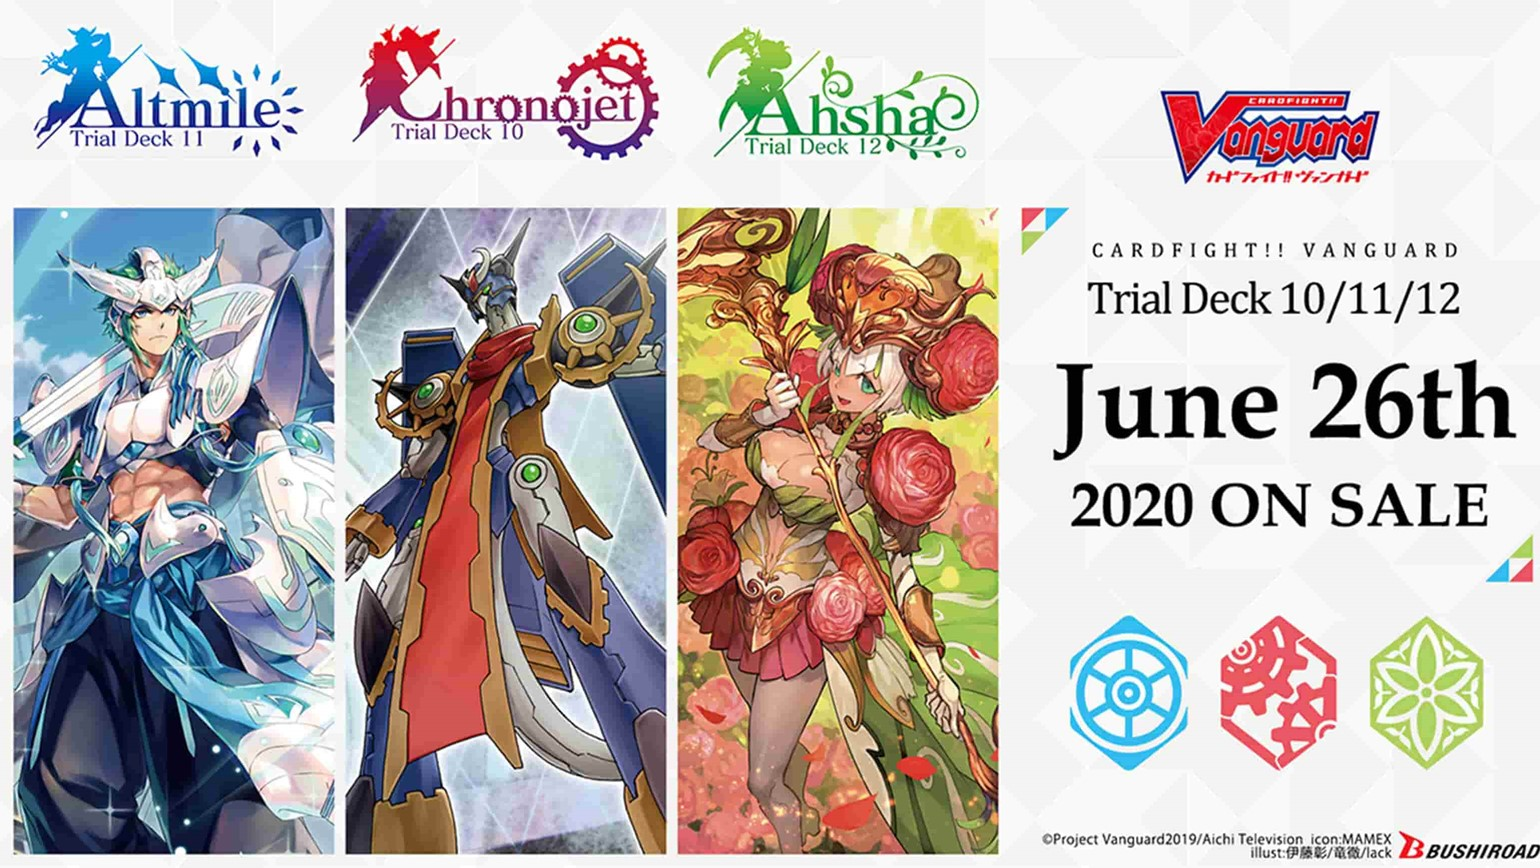 Three New English Edition Cardfight!! Vanguard Trial Decks Coming to Stores on June 26th